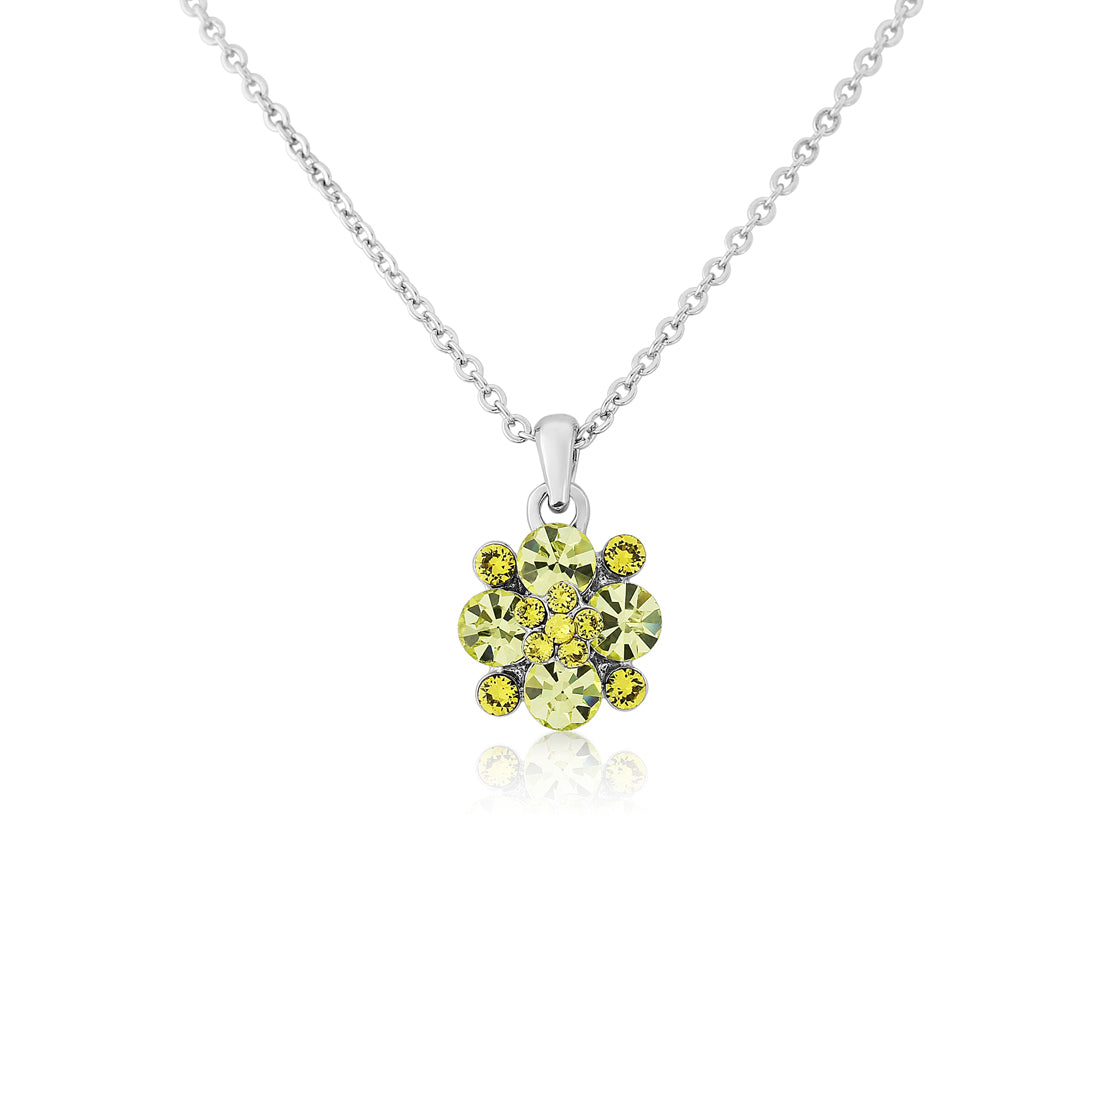 Delicate Sunshine Yellow Bridesmaid Pendant